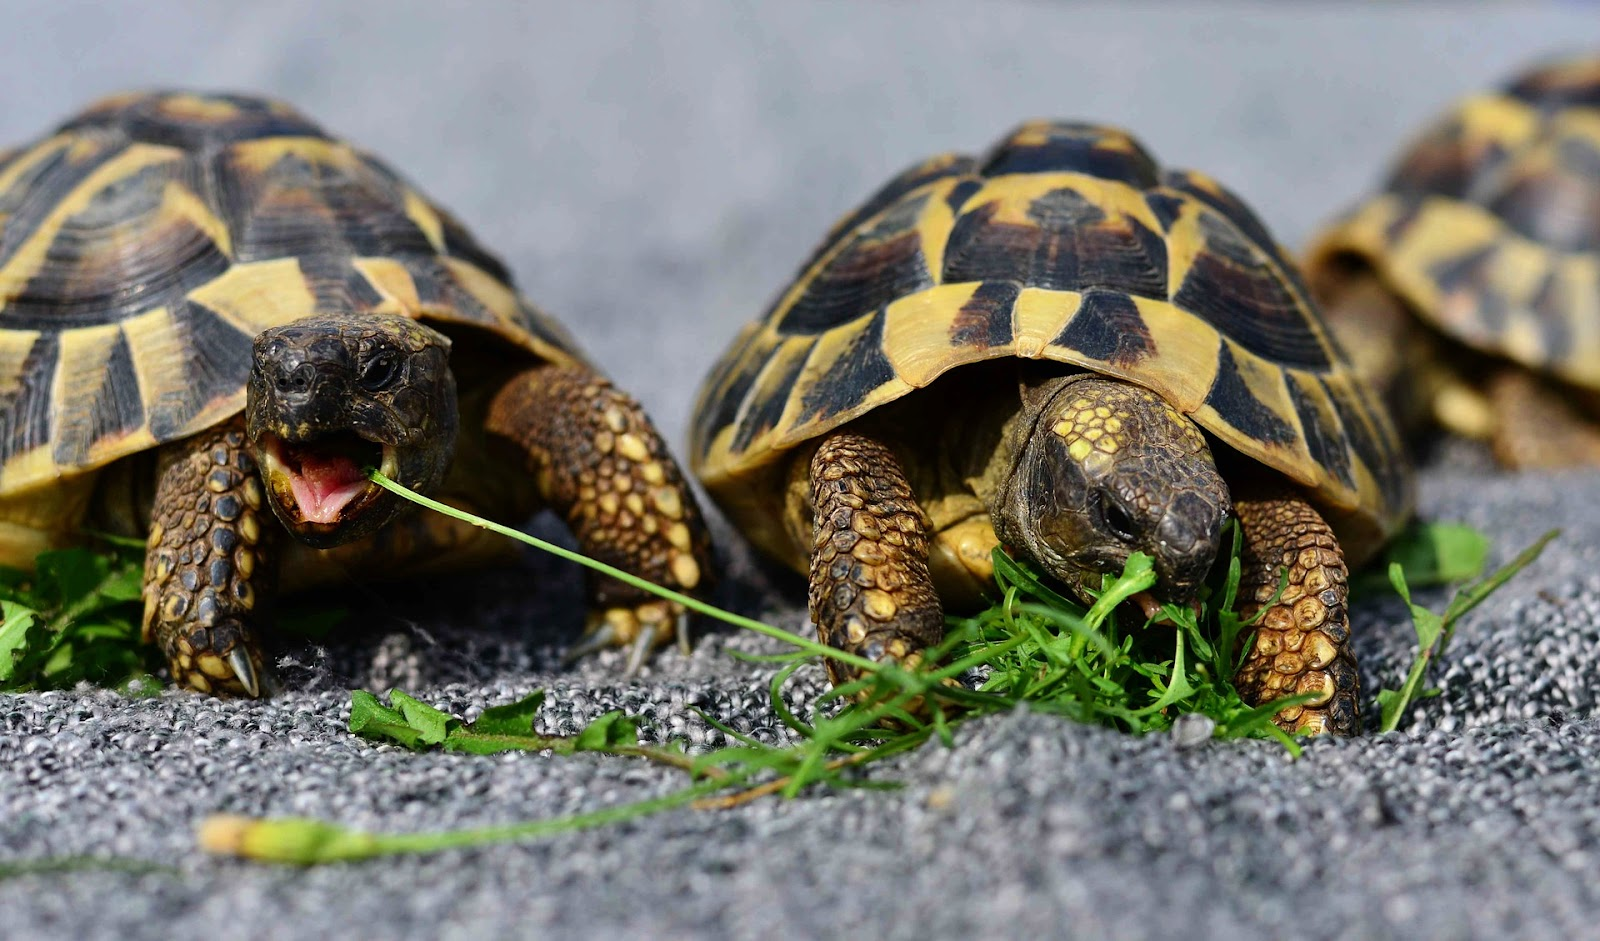 Small tortoises eating